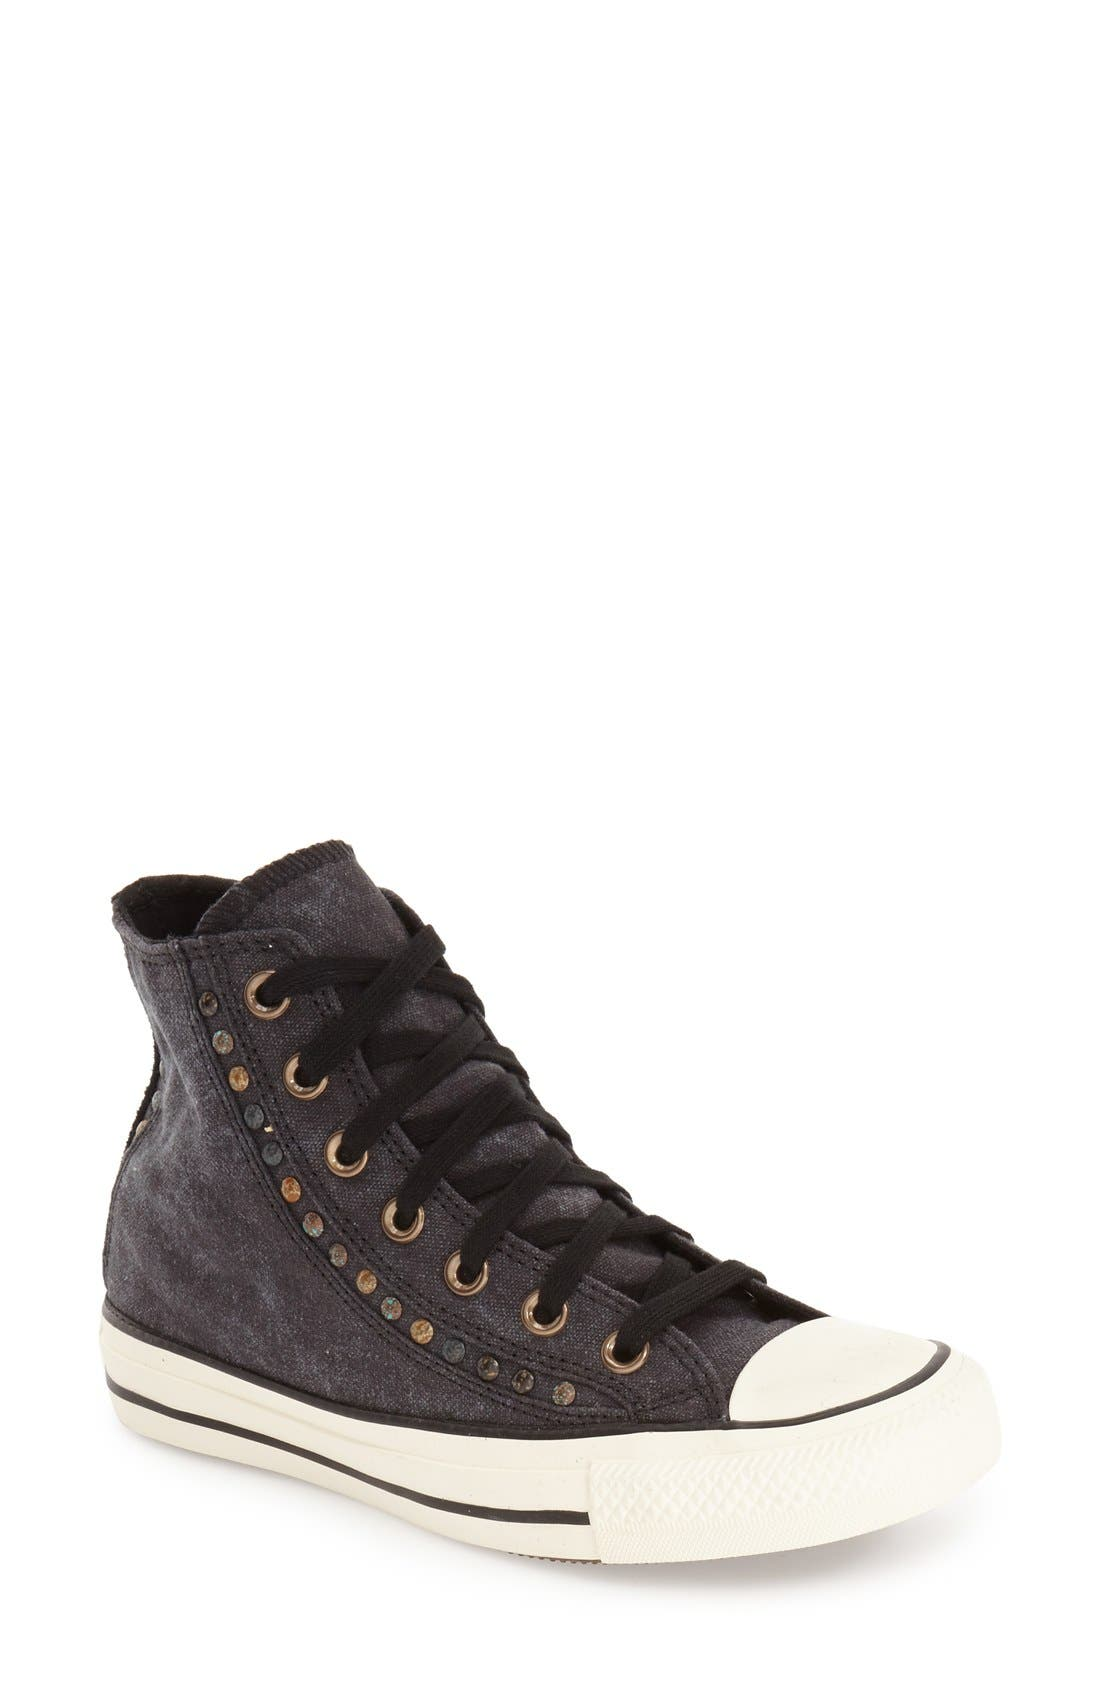 Alternate Image 1 Selected - Converse Chuck Taylor® All Star® 'Eyerow' Studded High Top Sneaker (Women)